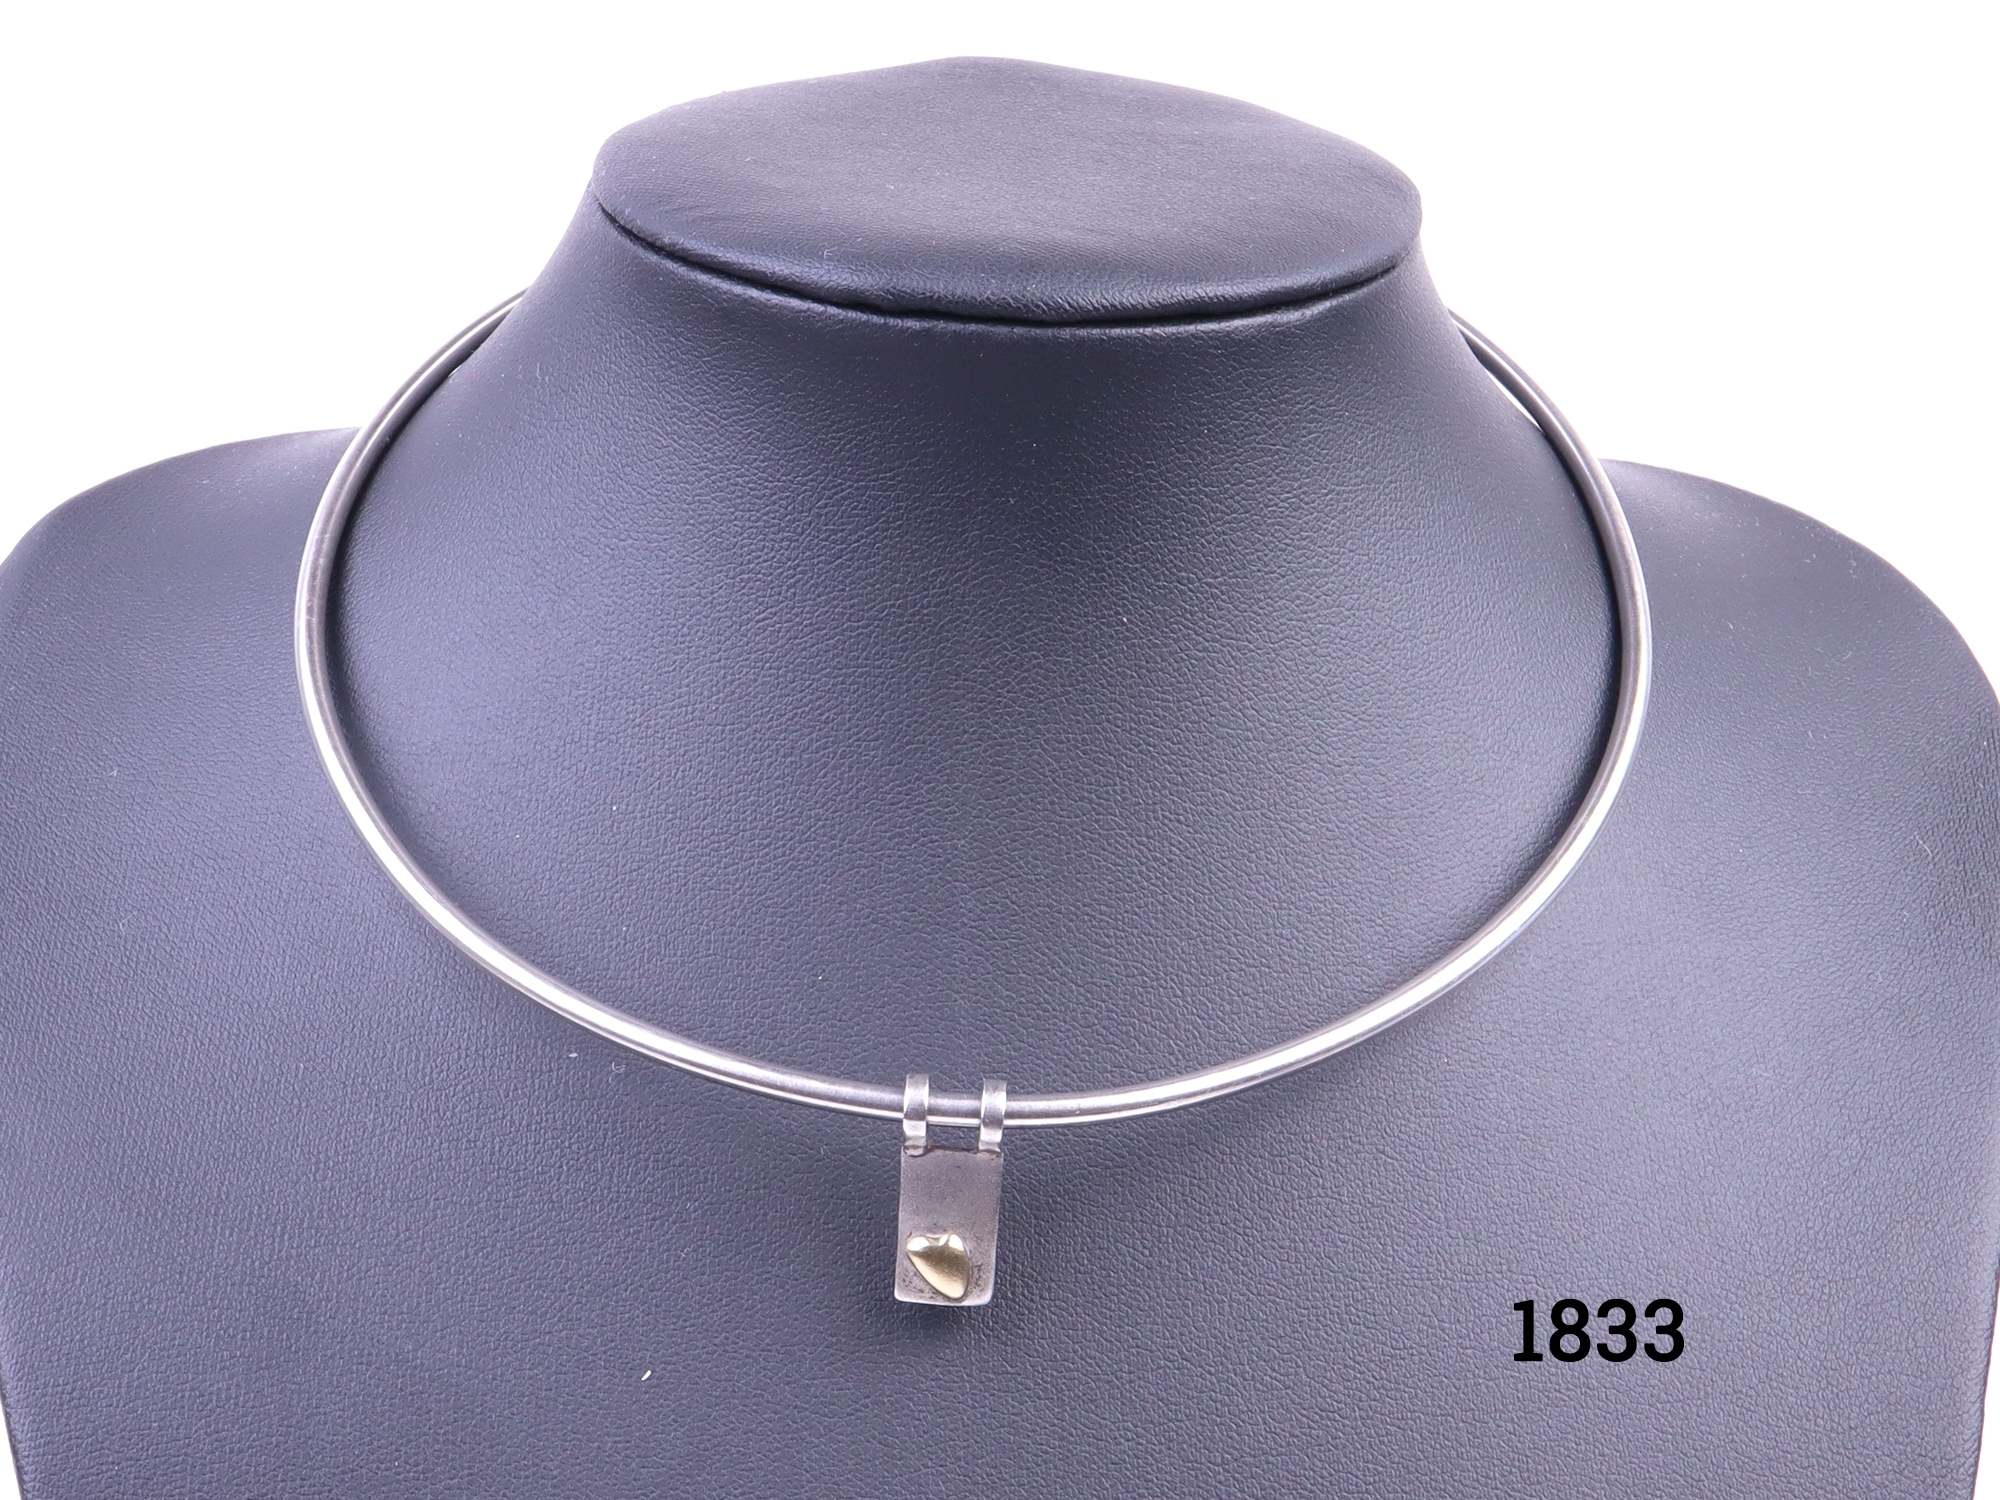 Diana Porter silver necklace in choker style. Hallmarked sterling silver choker style necklace and sterling silver pendant with 18carat gold heart. Necklace width opening 130mm and depth 120mm Pendant size 20mm by 6mm Main photo of necklace on a display stand showing the pendant with gold heart to the front. Other photos shows necklace from the side, on a flat surface and close-up of hallmark on the pendant